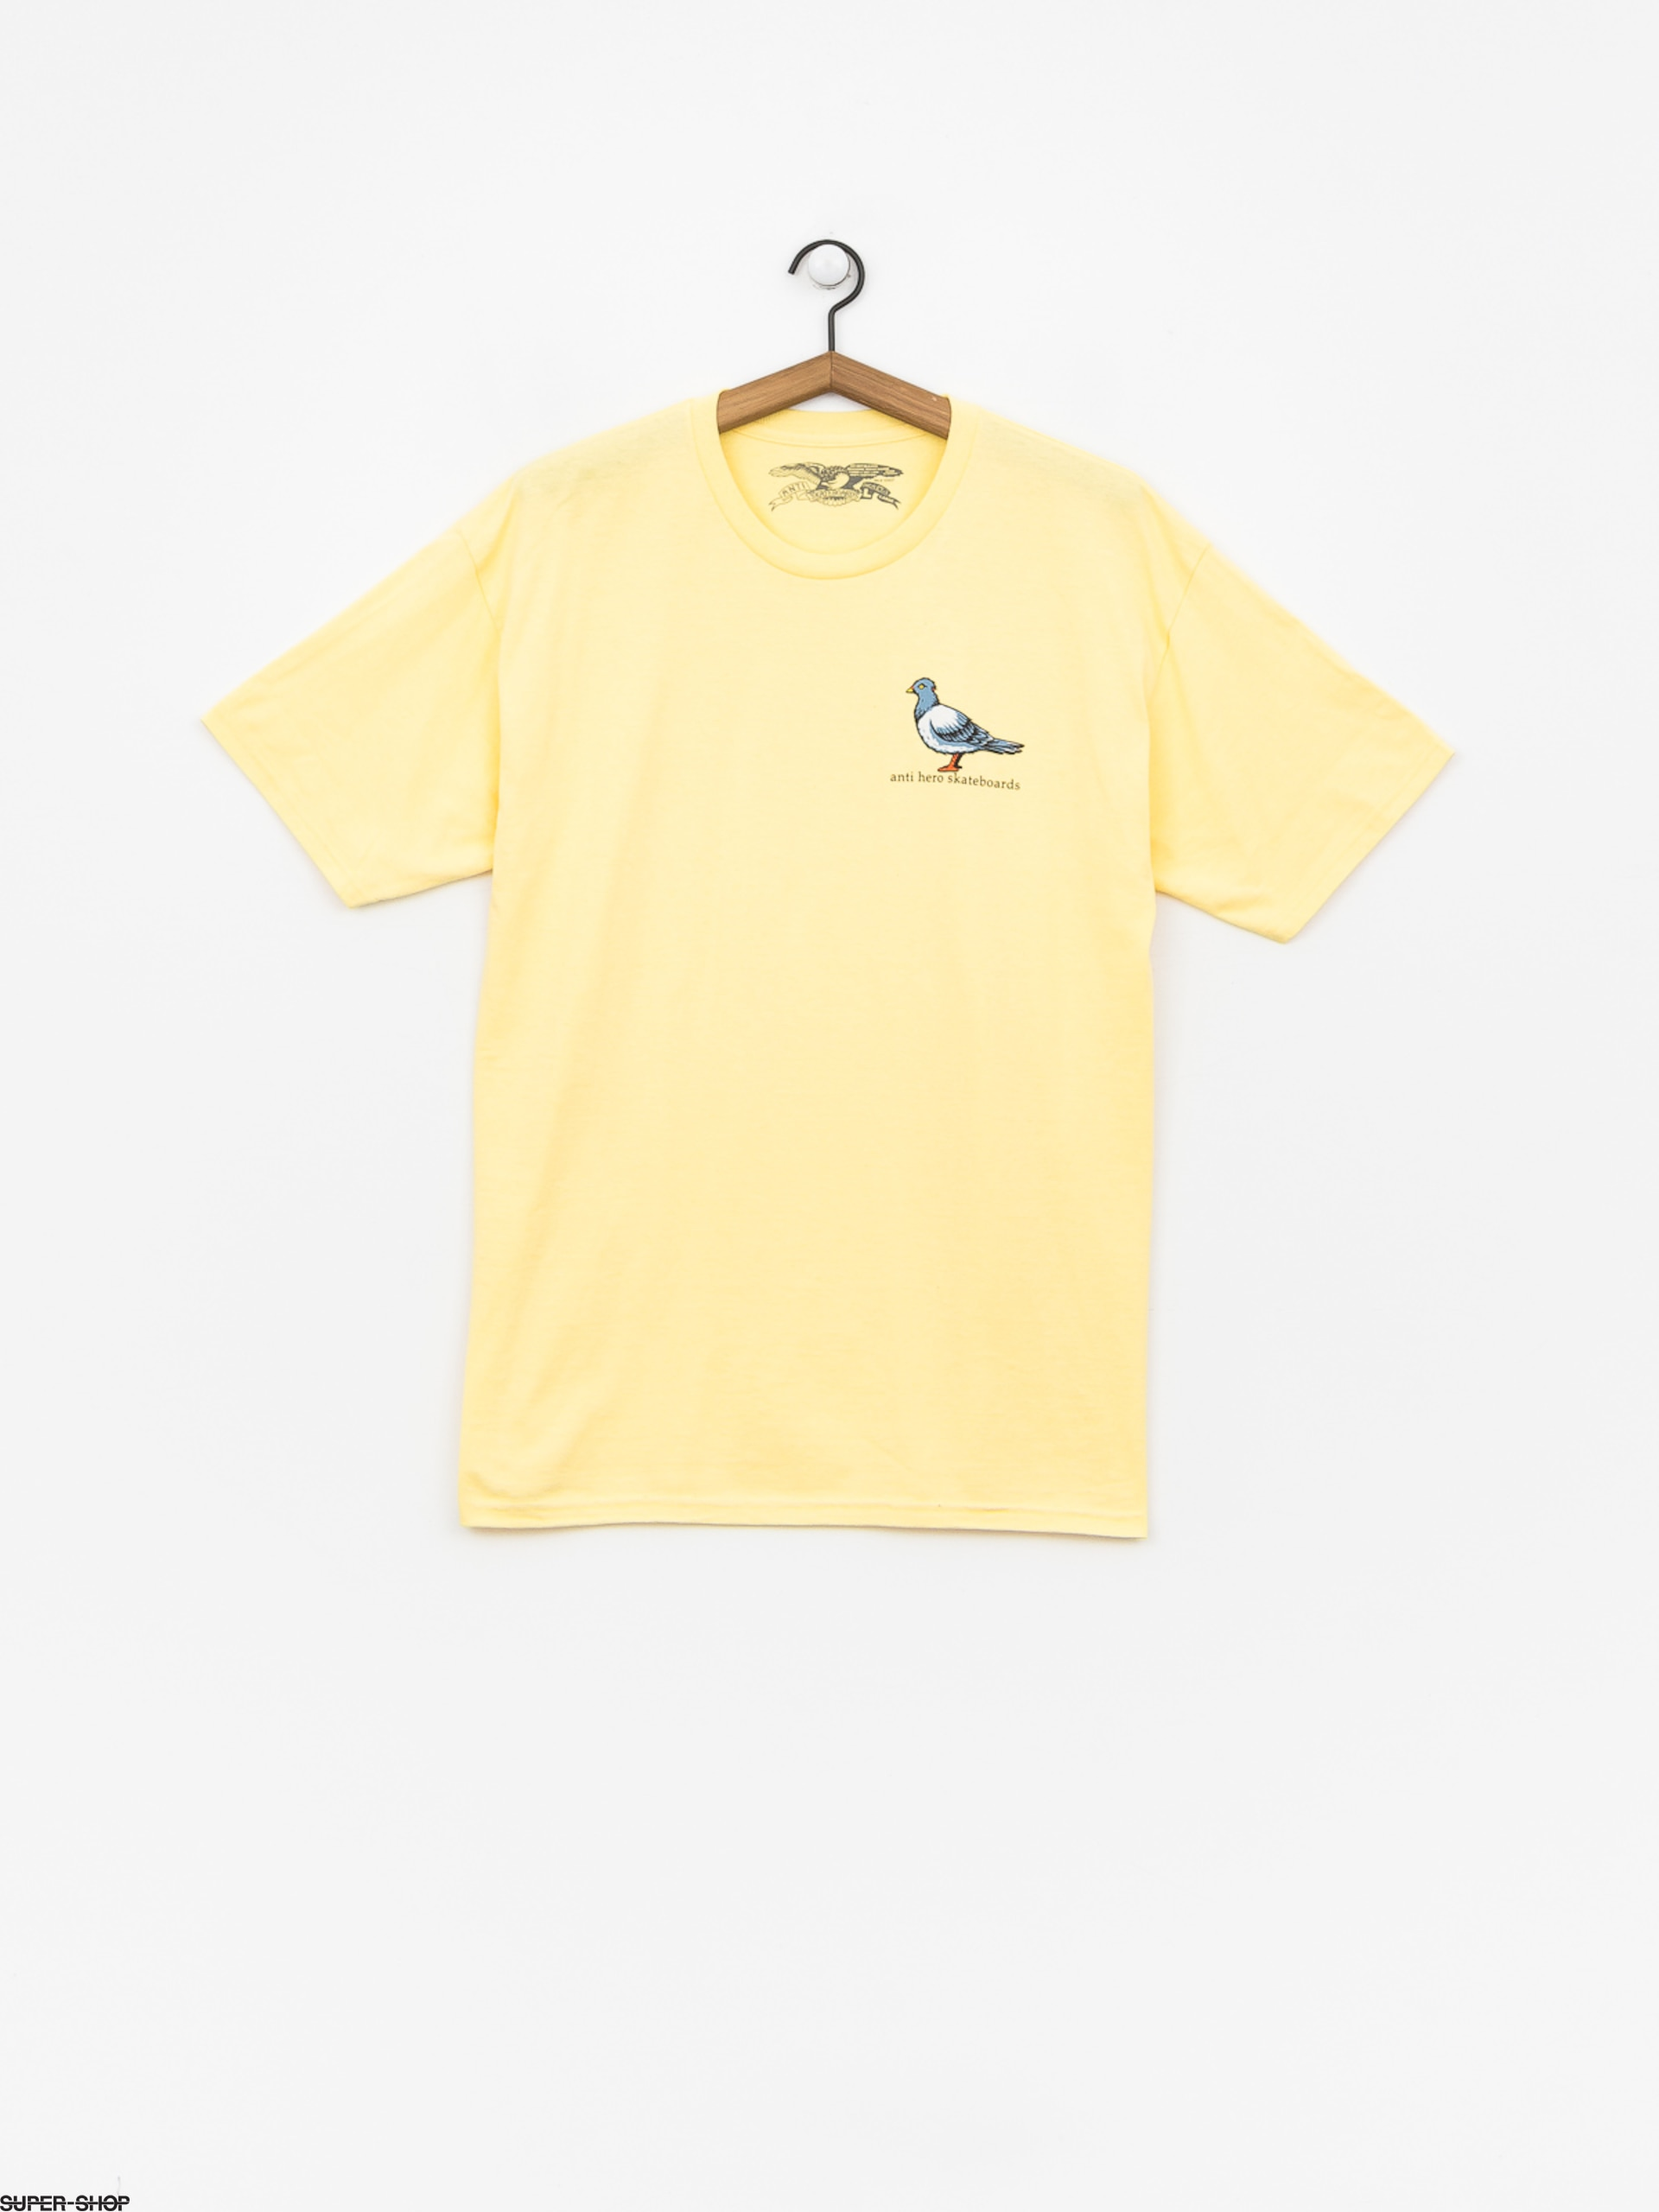 Lil/' Shirt in Lil/' Bananas